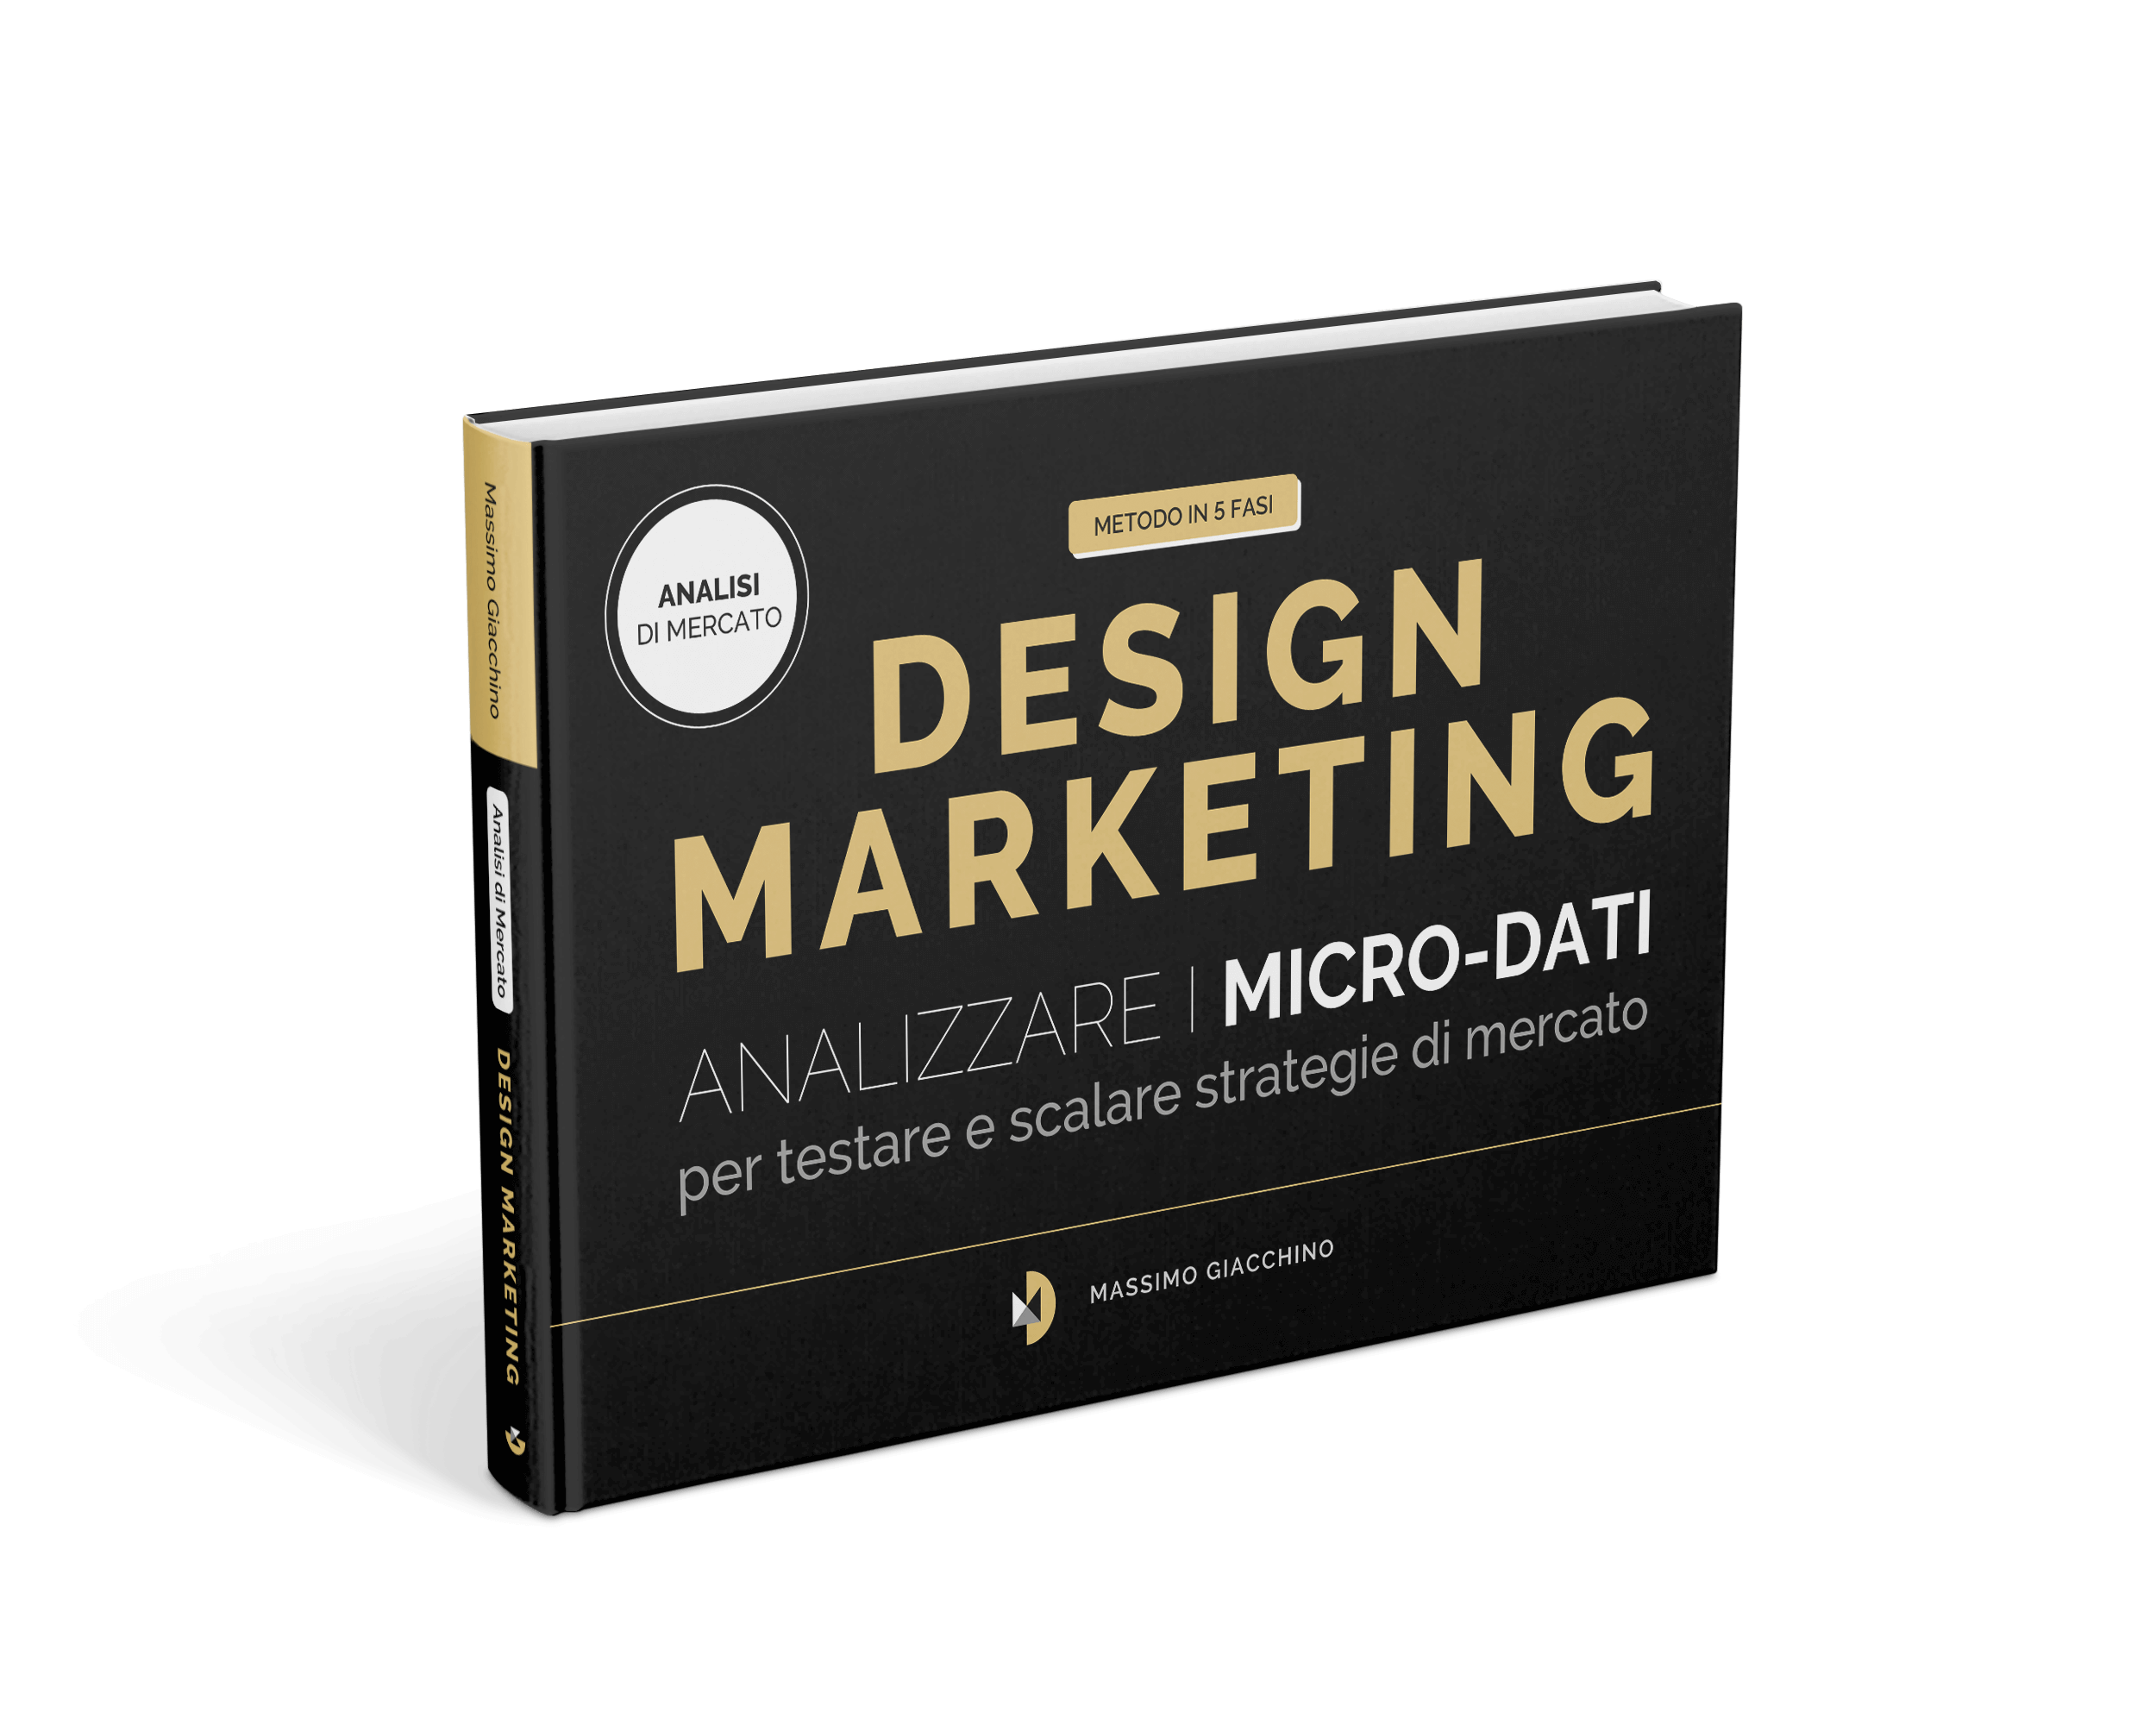 Libro Design Marketing_analizzare i micro-dati_Massimo Giacchino